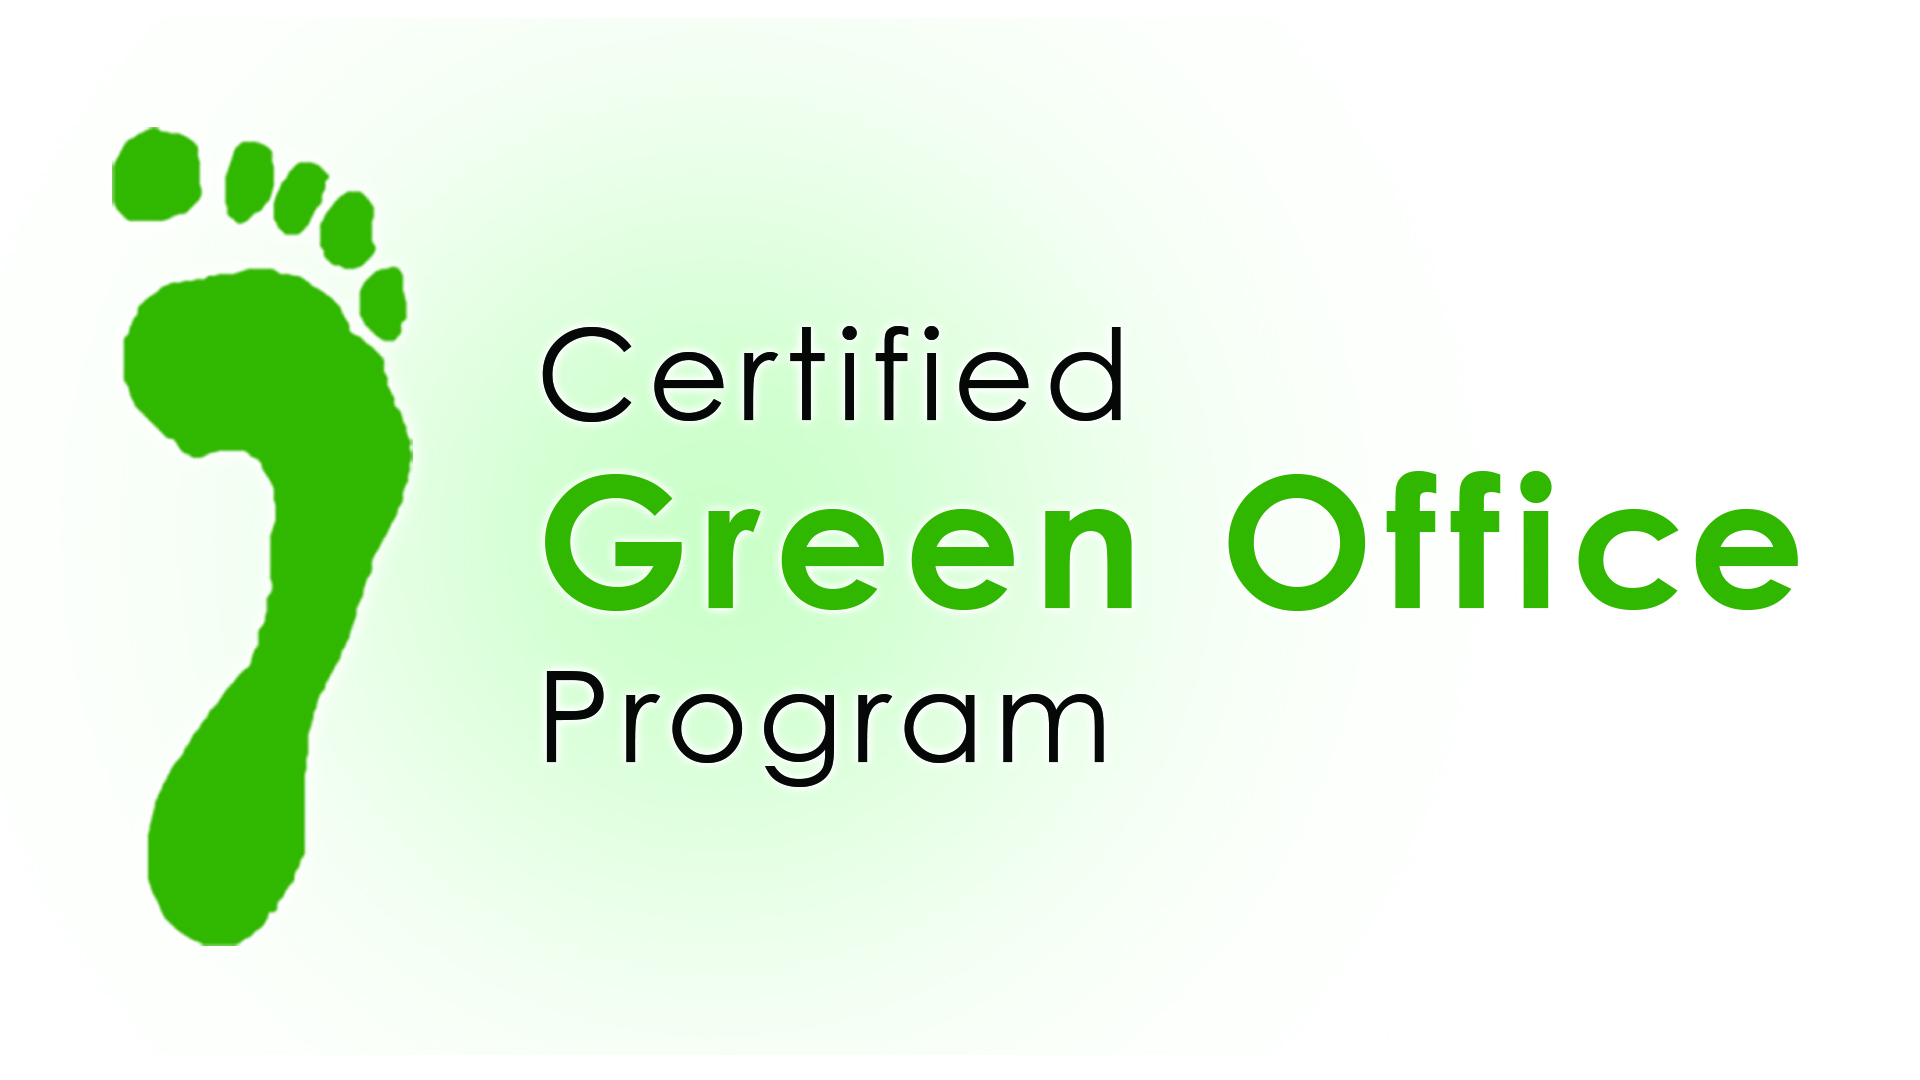 Certified Green Office Program logo